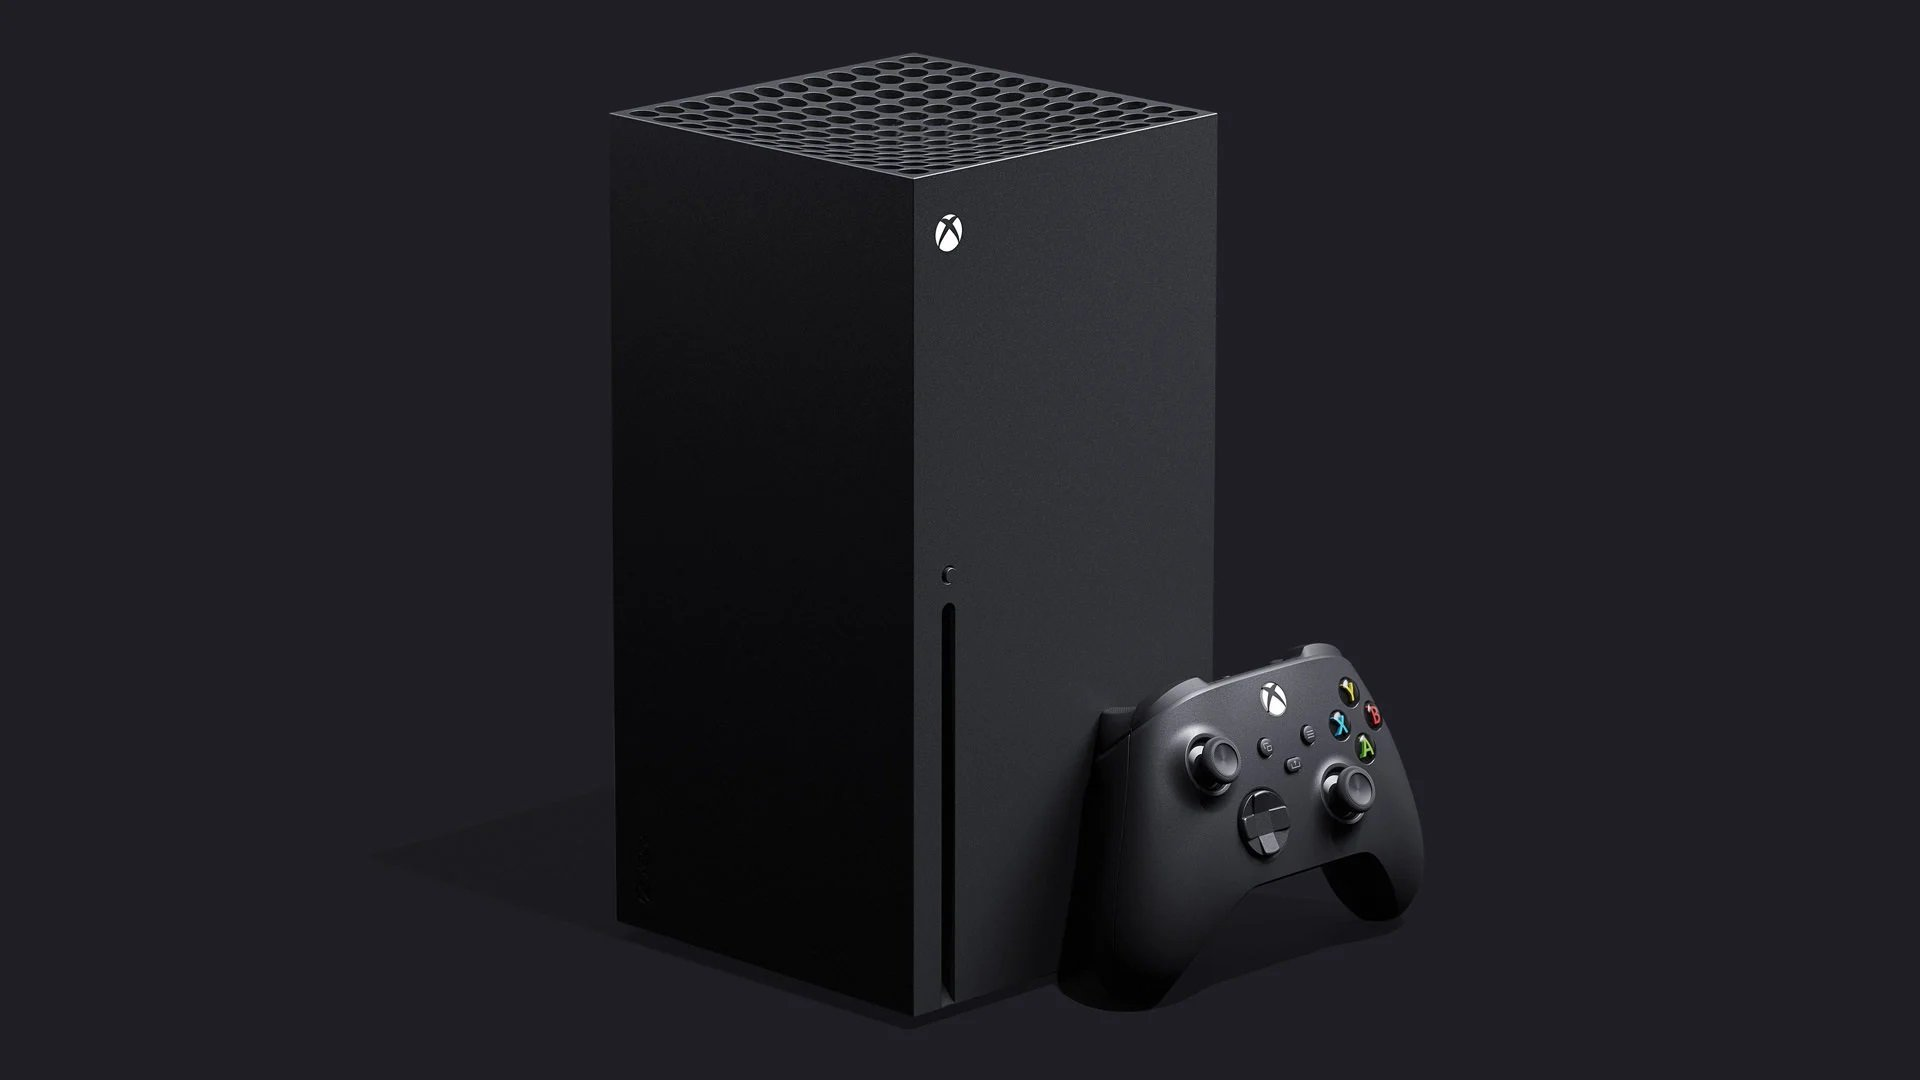 It kinda seems like this was the only wave of Xbox Series X pre-orders before launch screenshot